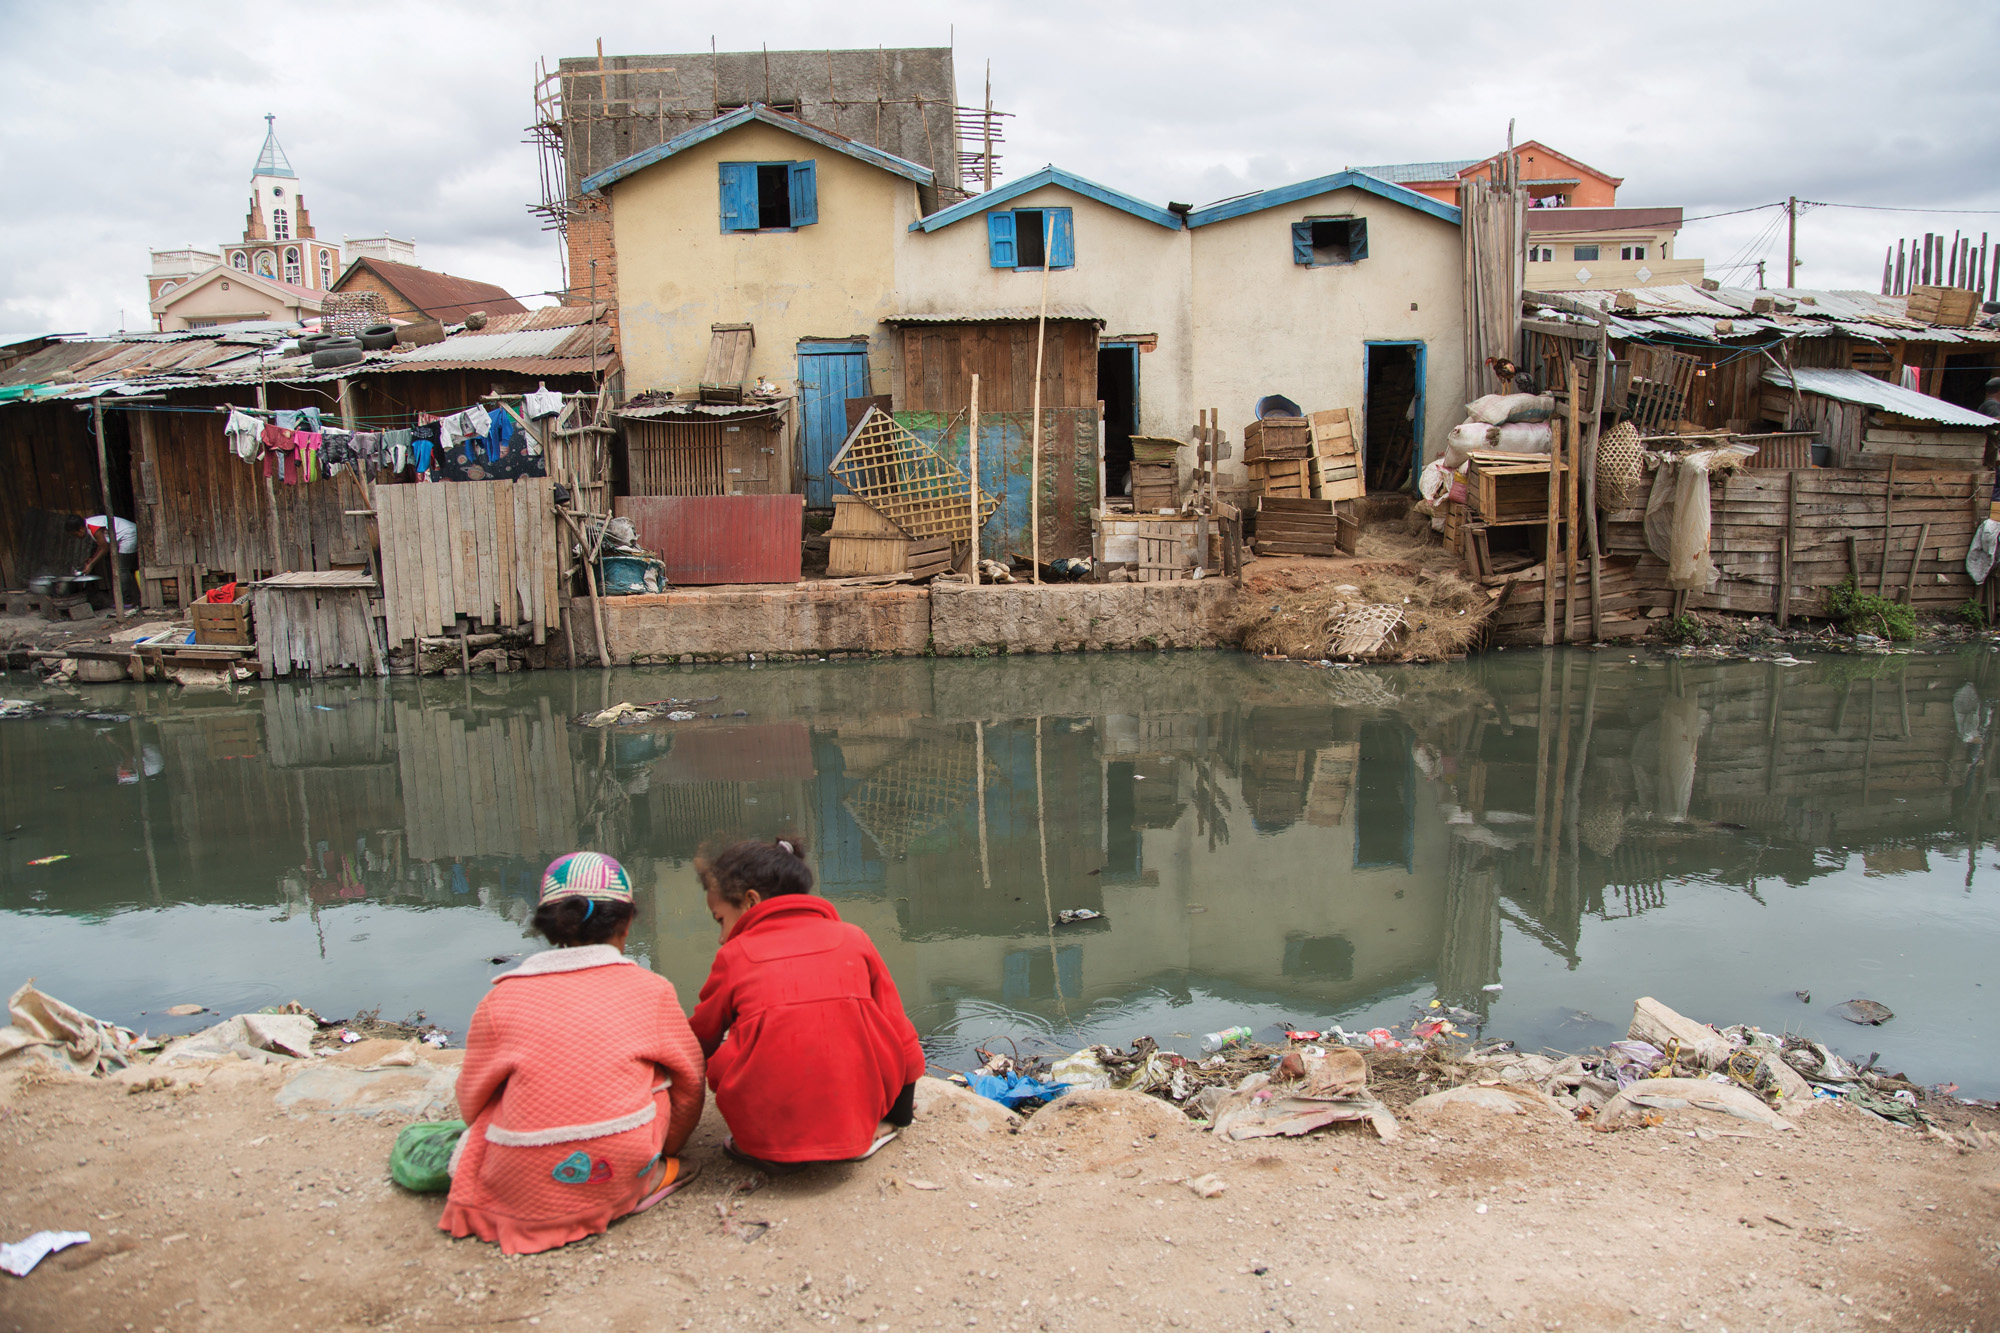 http://s12982.pcdn.co/wp-content/uploads/2015/01/Pollution-in-Antananarivo.jpg